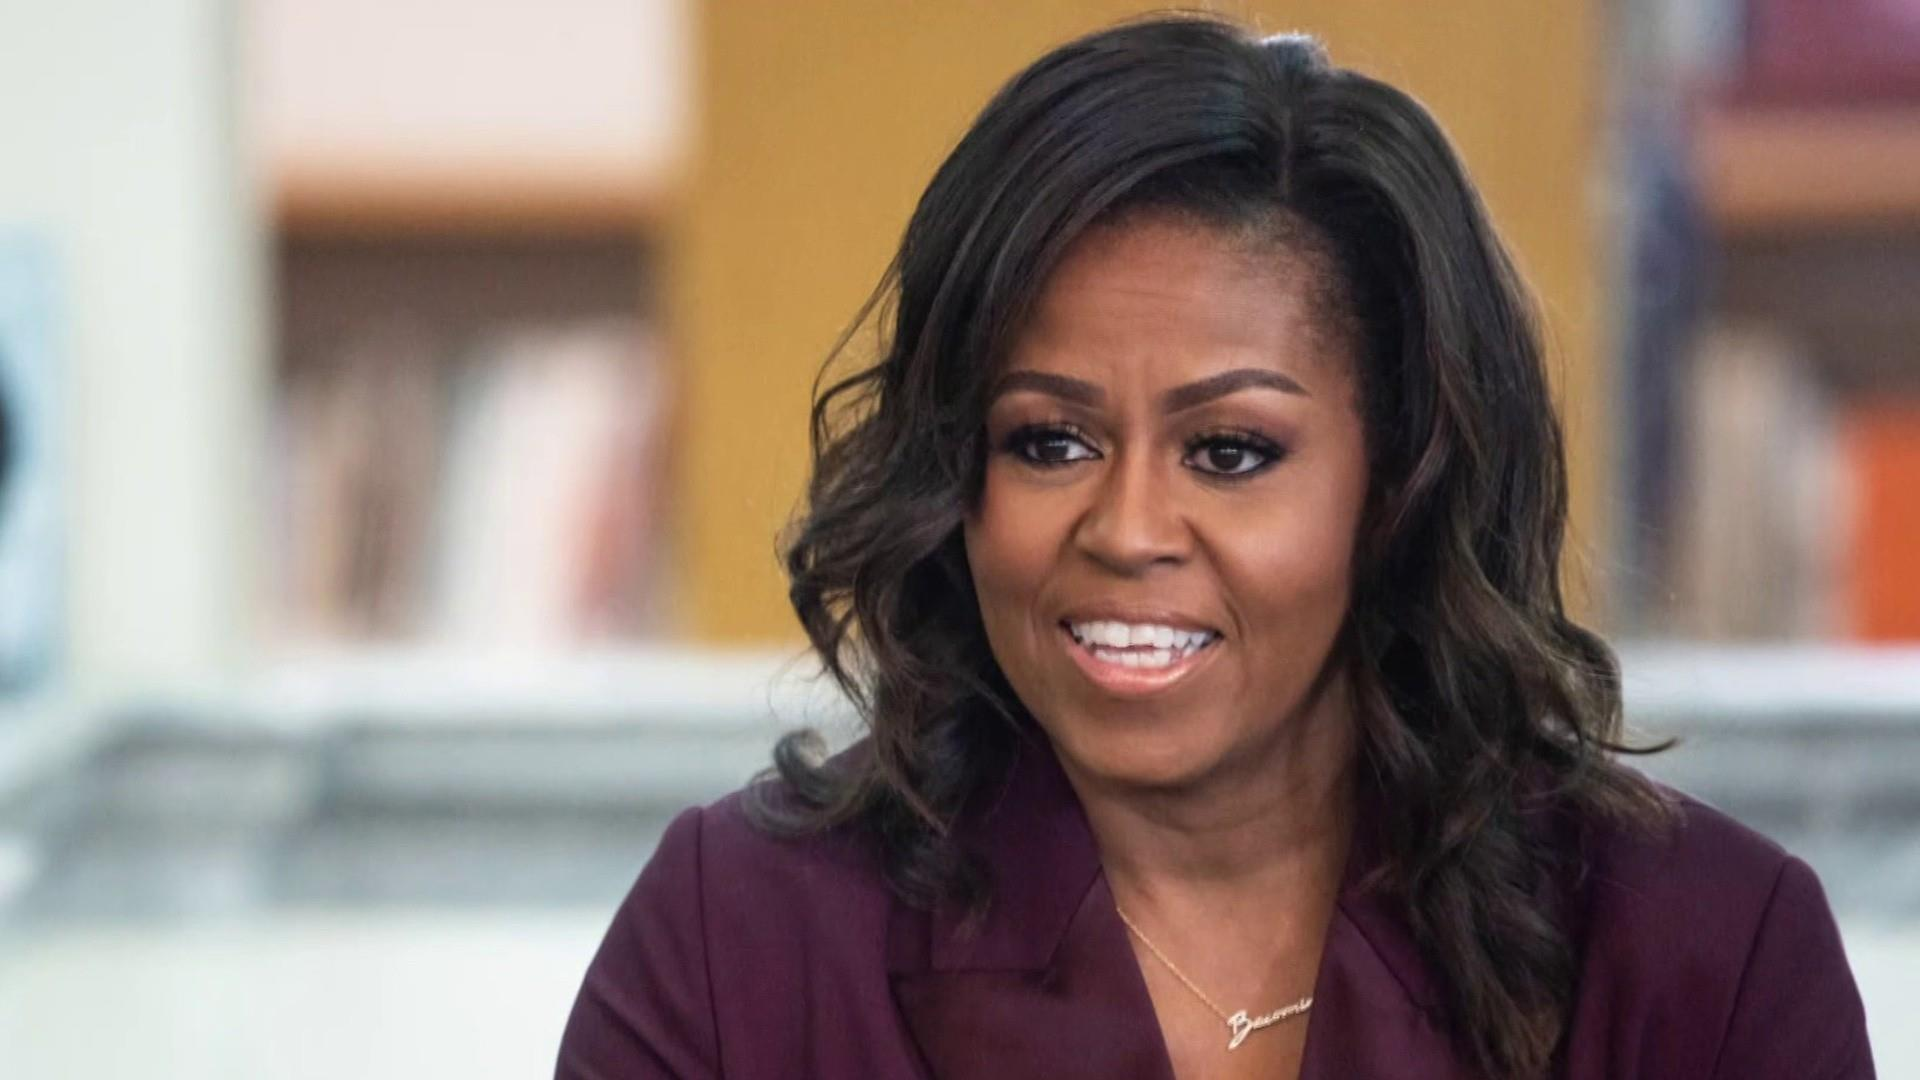 michelle-obama-talks-making-life-normal-for-her-and-baracks-daughters-while-growing-up-at-the-white-house